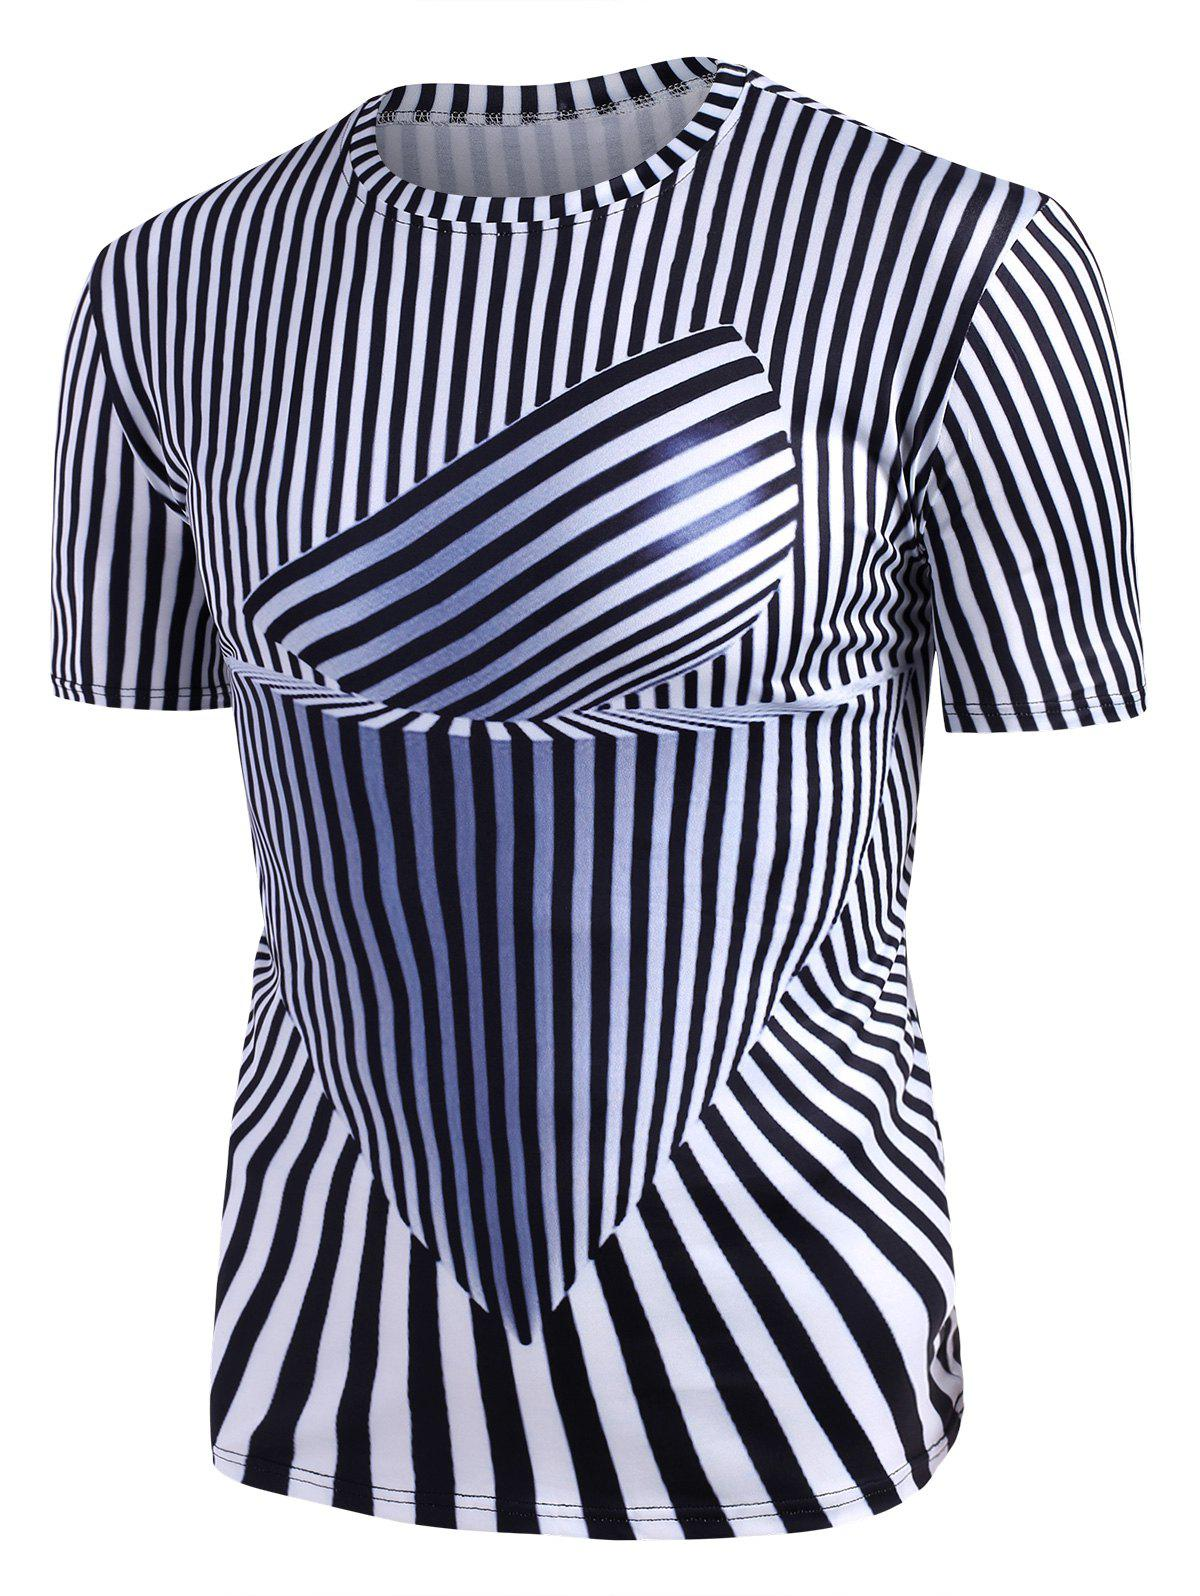 Buy Abstract Striped Graphic Crew Neck Short Sleeve T Shirt